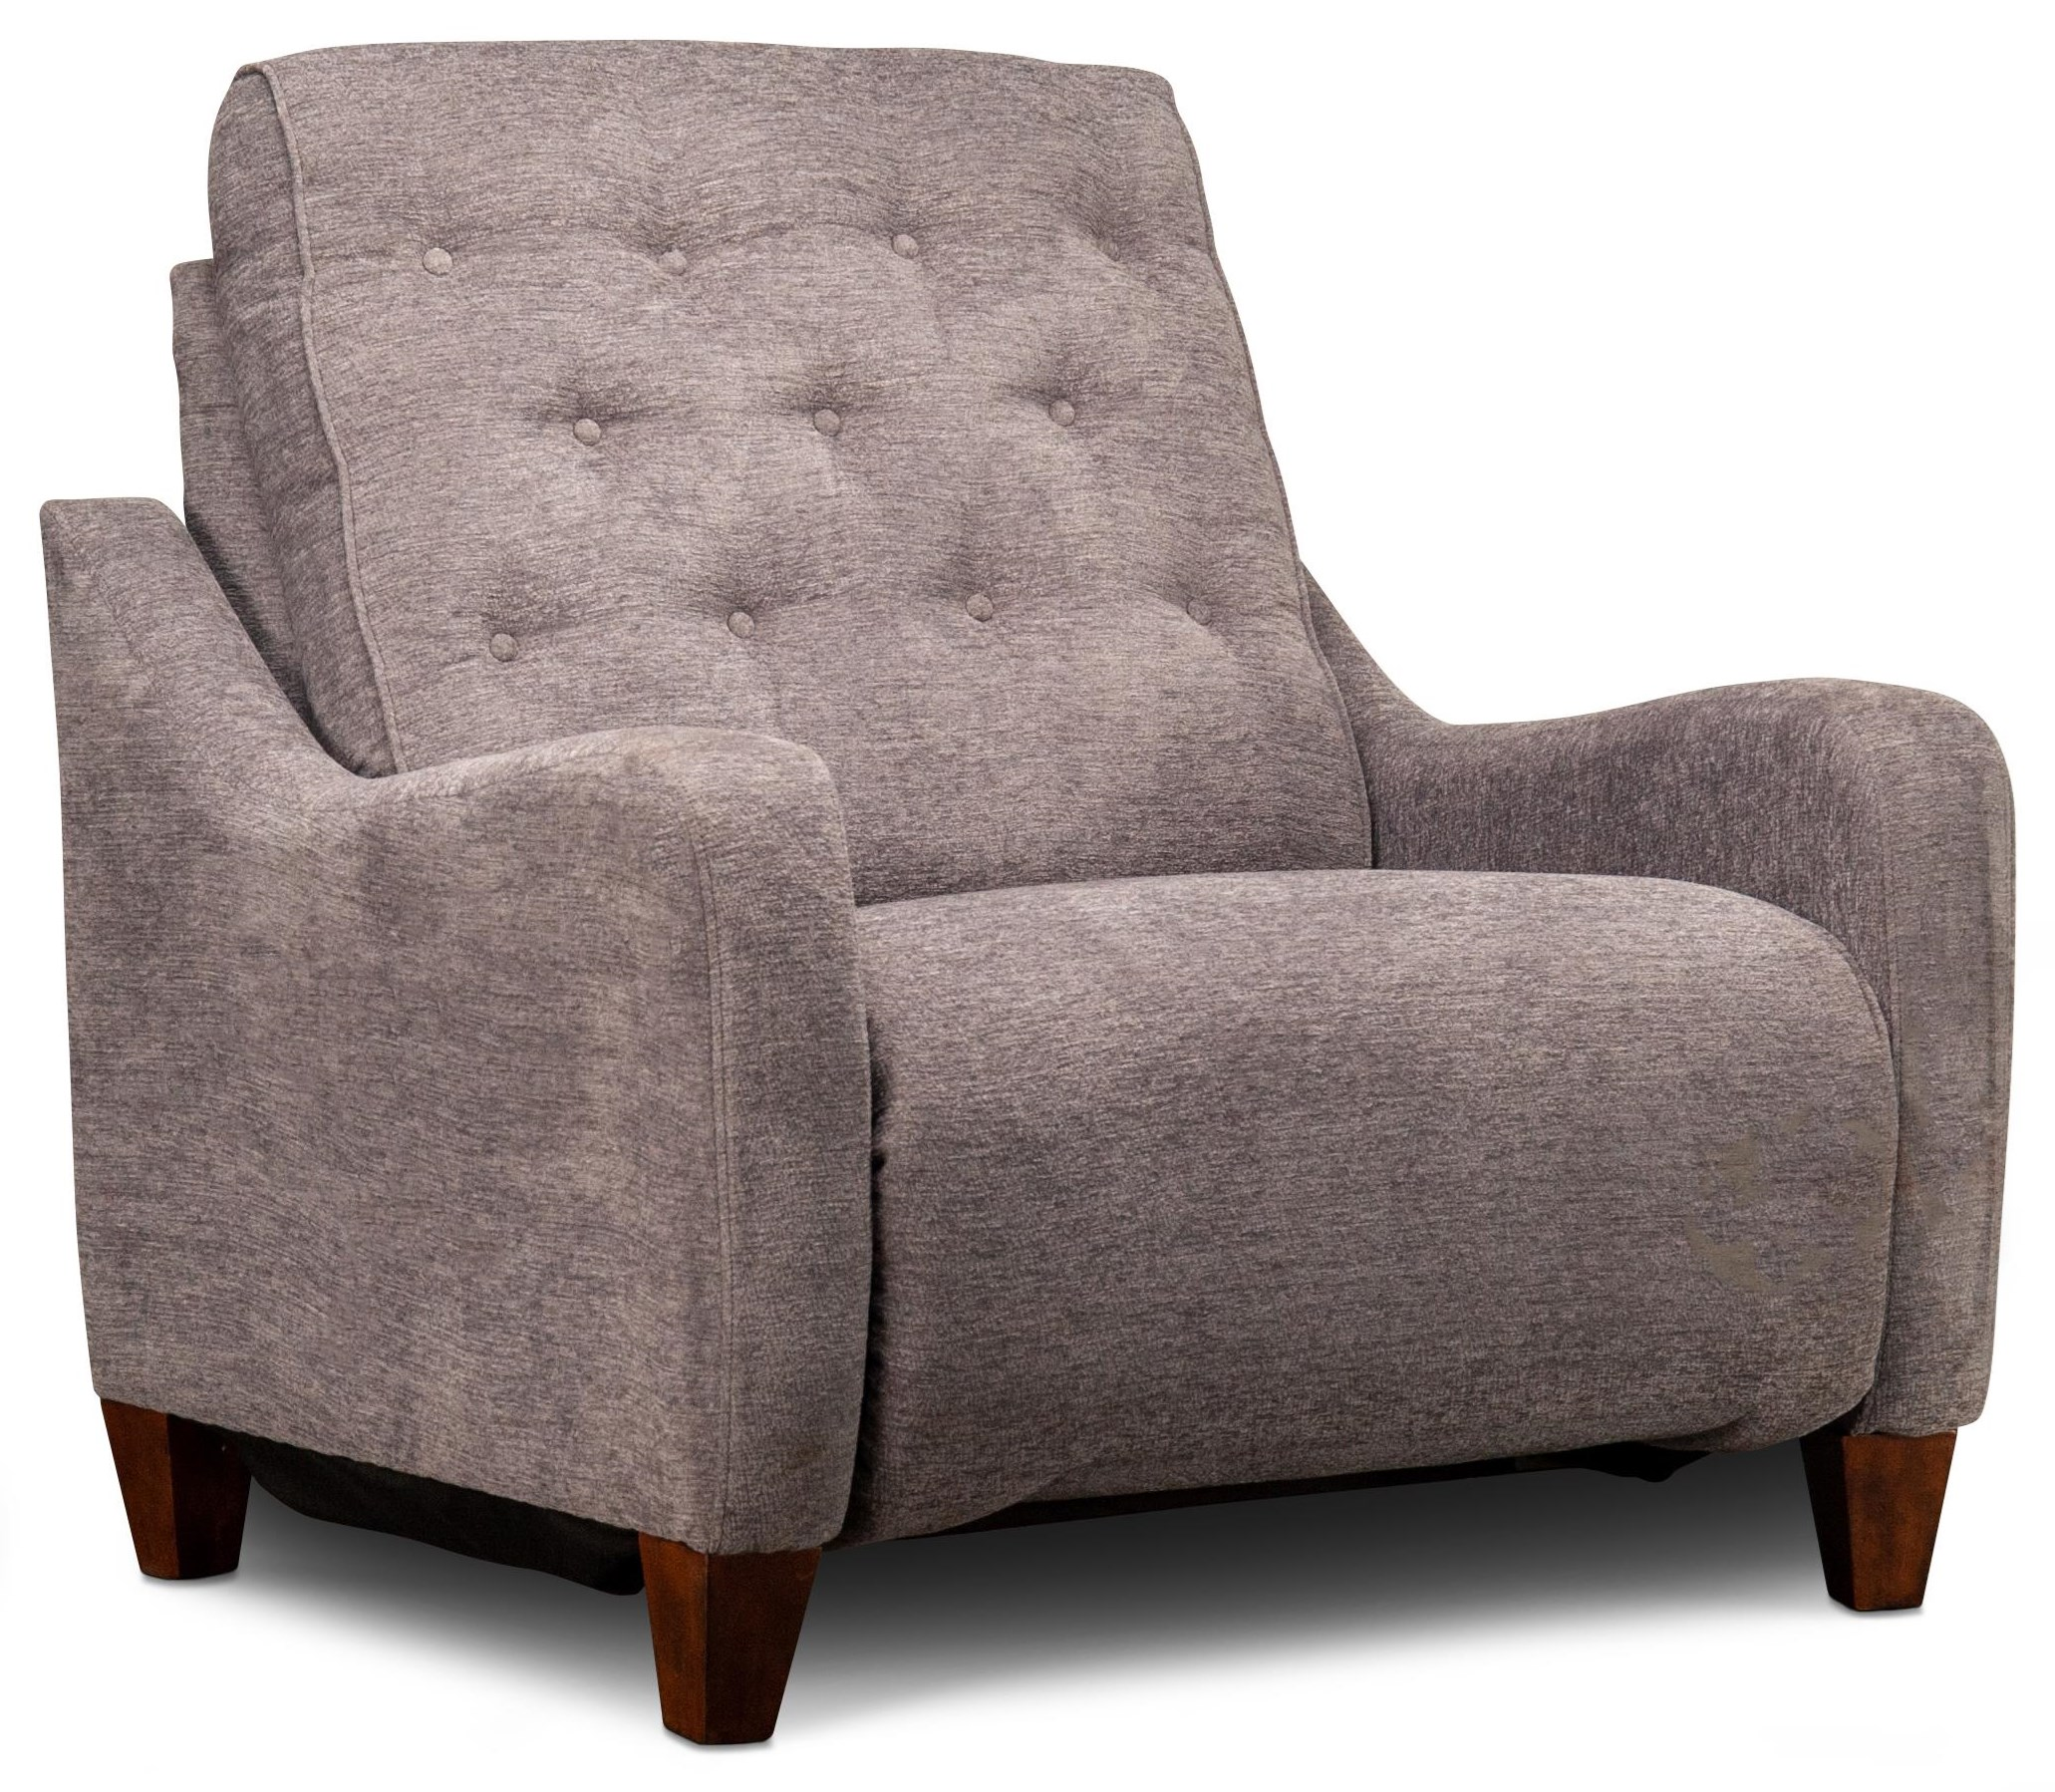 Catalina Catalina Power Recliner by Parker House at Morris Home